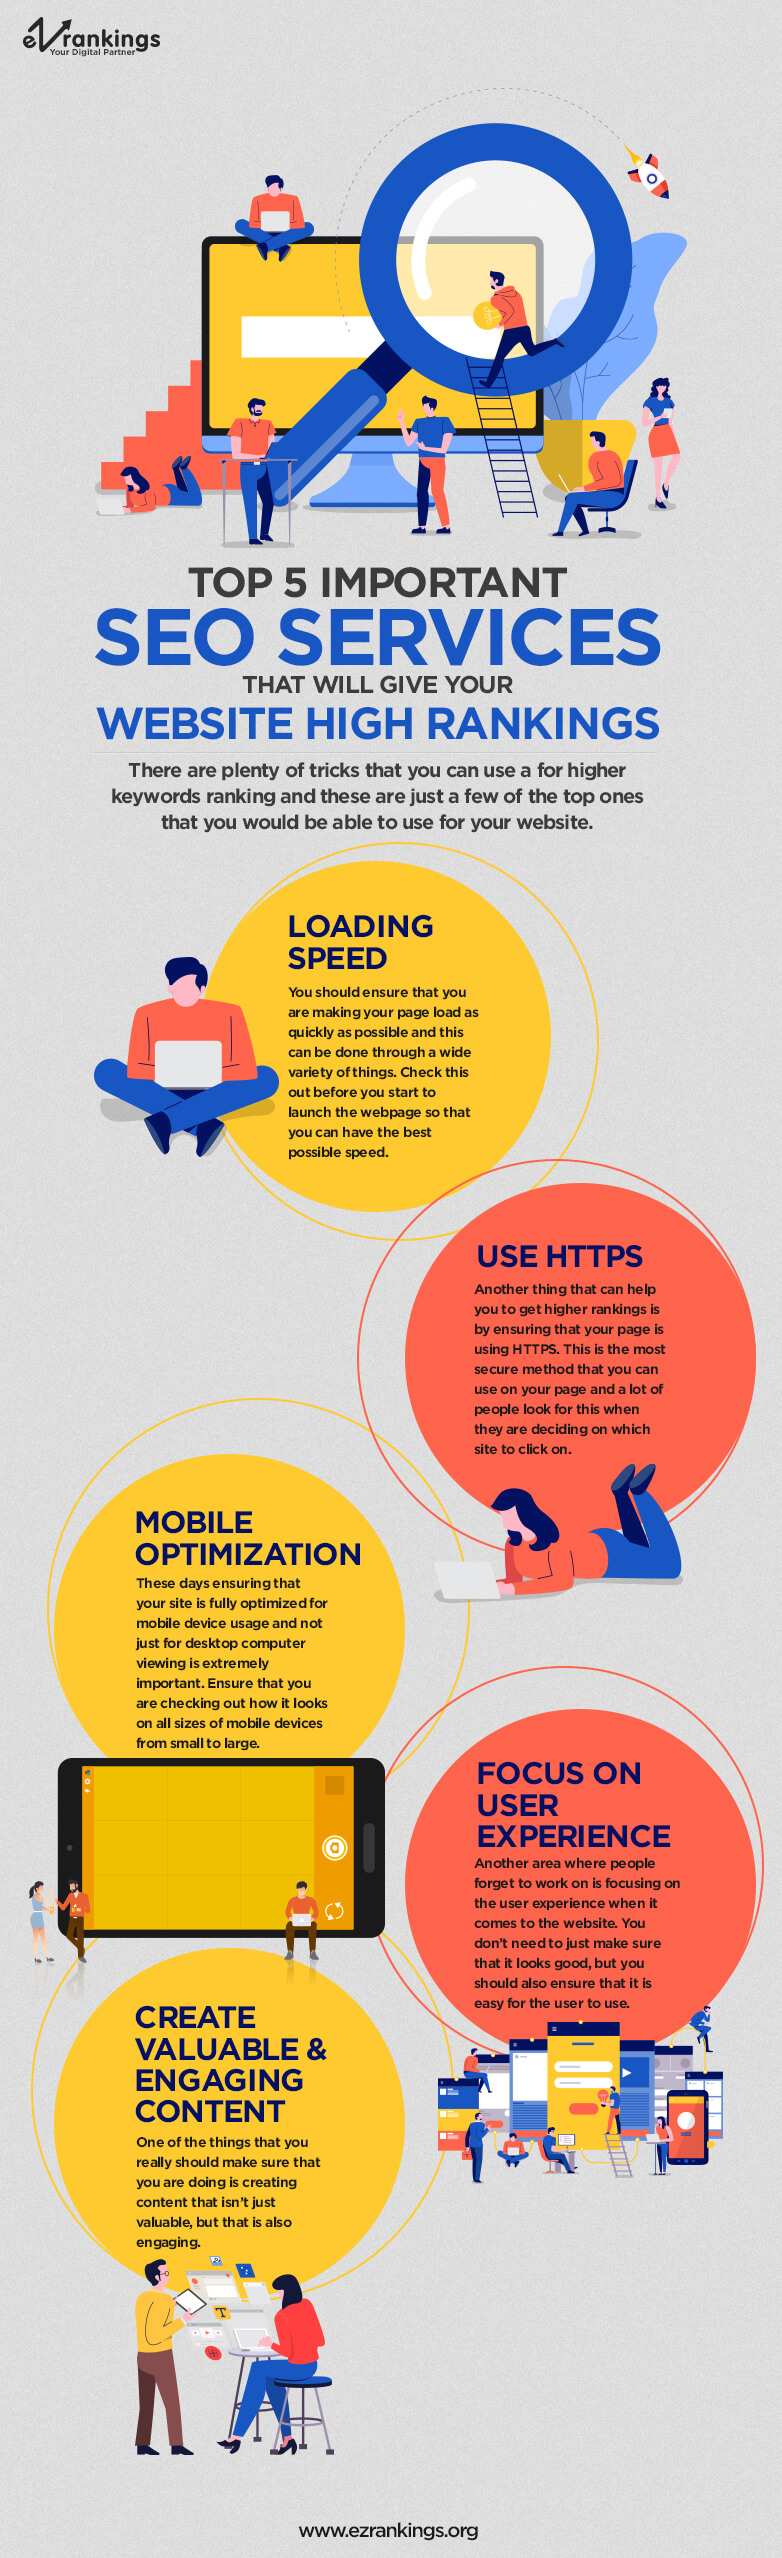 SEO-Services-that-Will-Give-Your-Website-High-Rankings-infographic-plaza